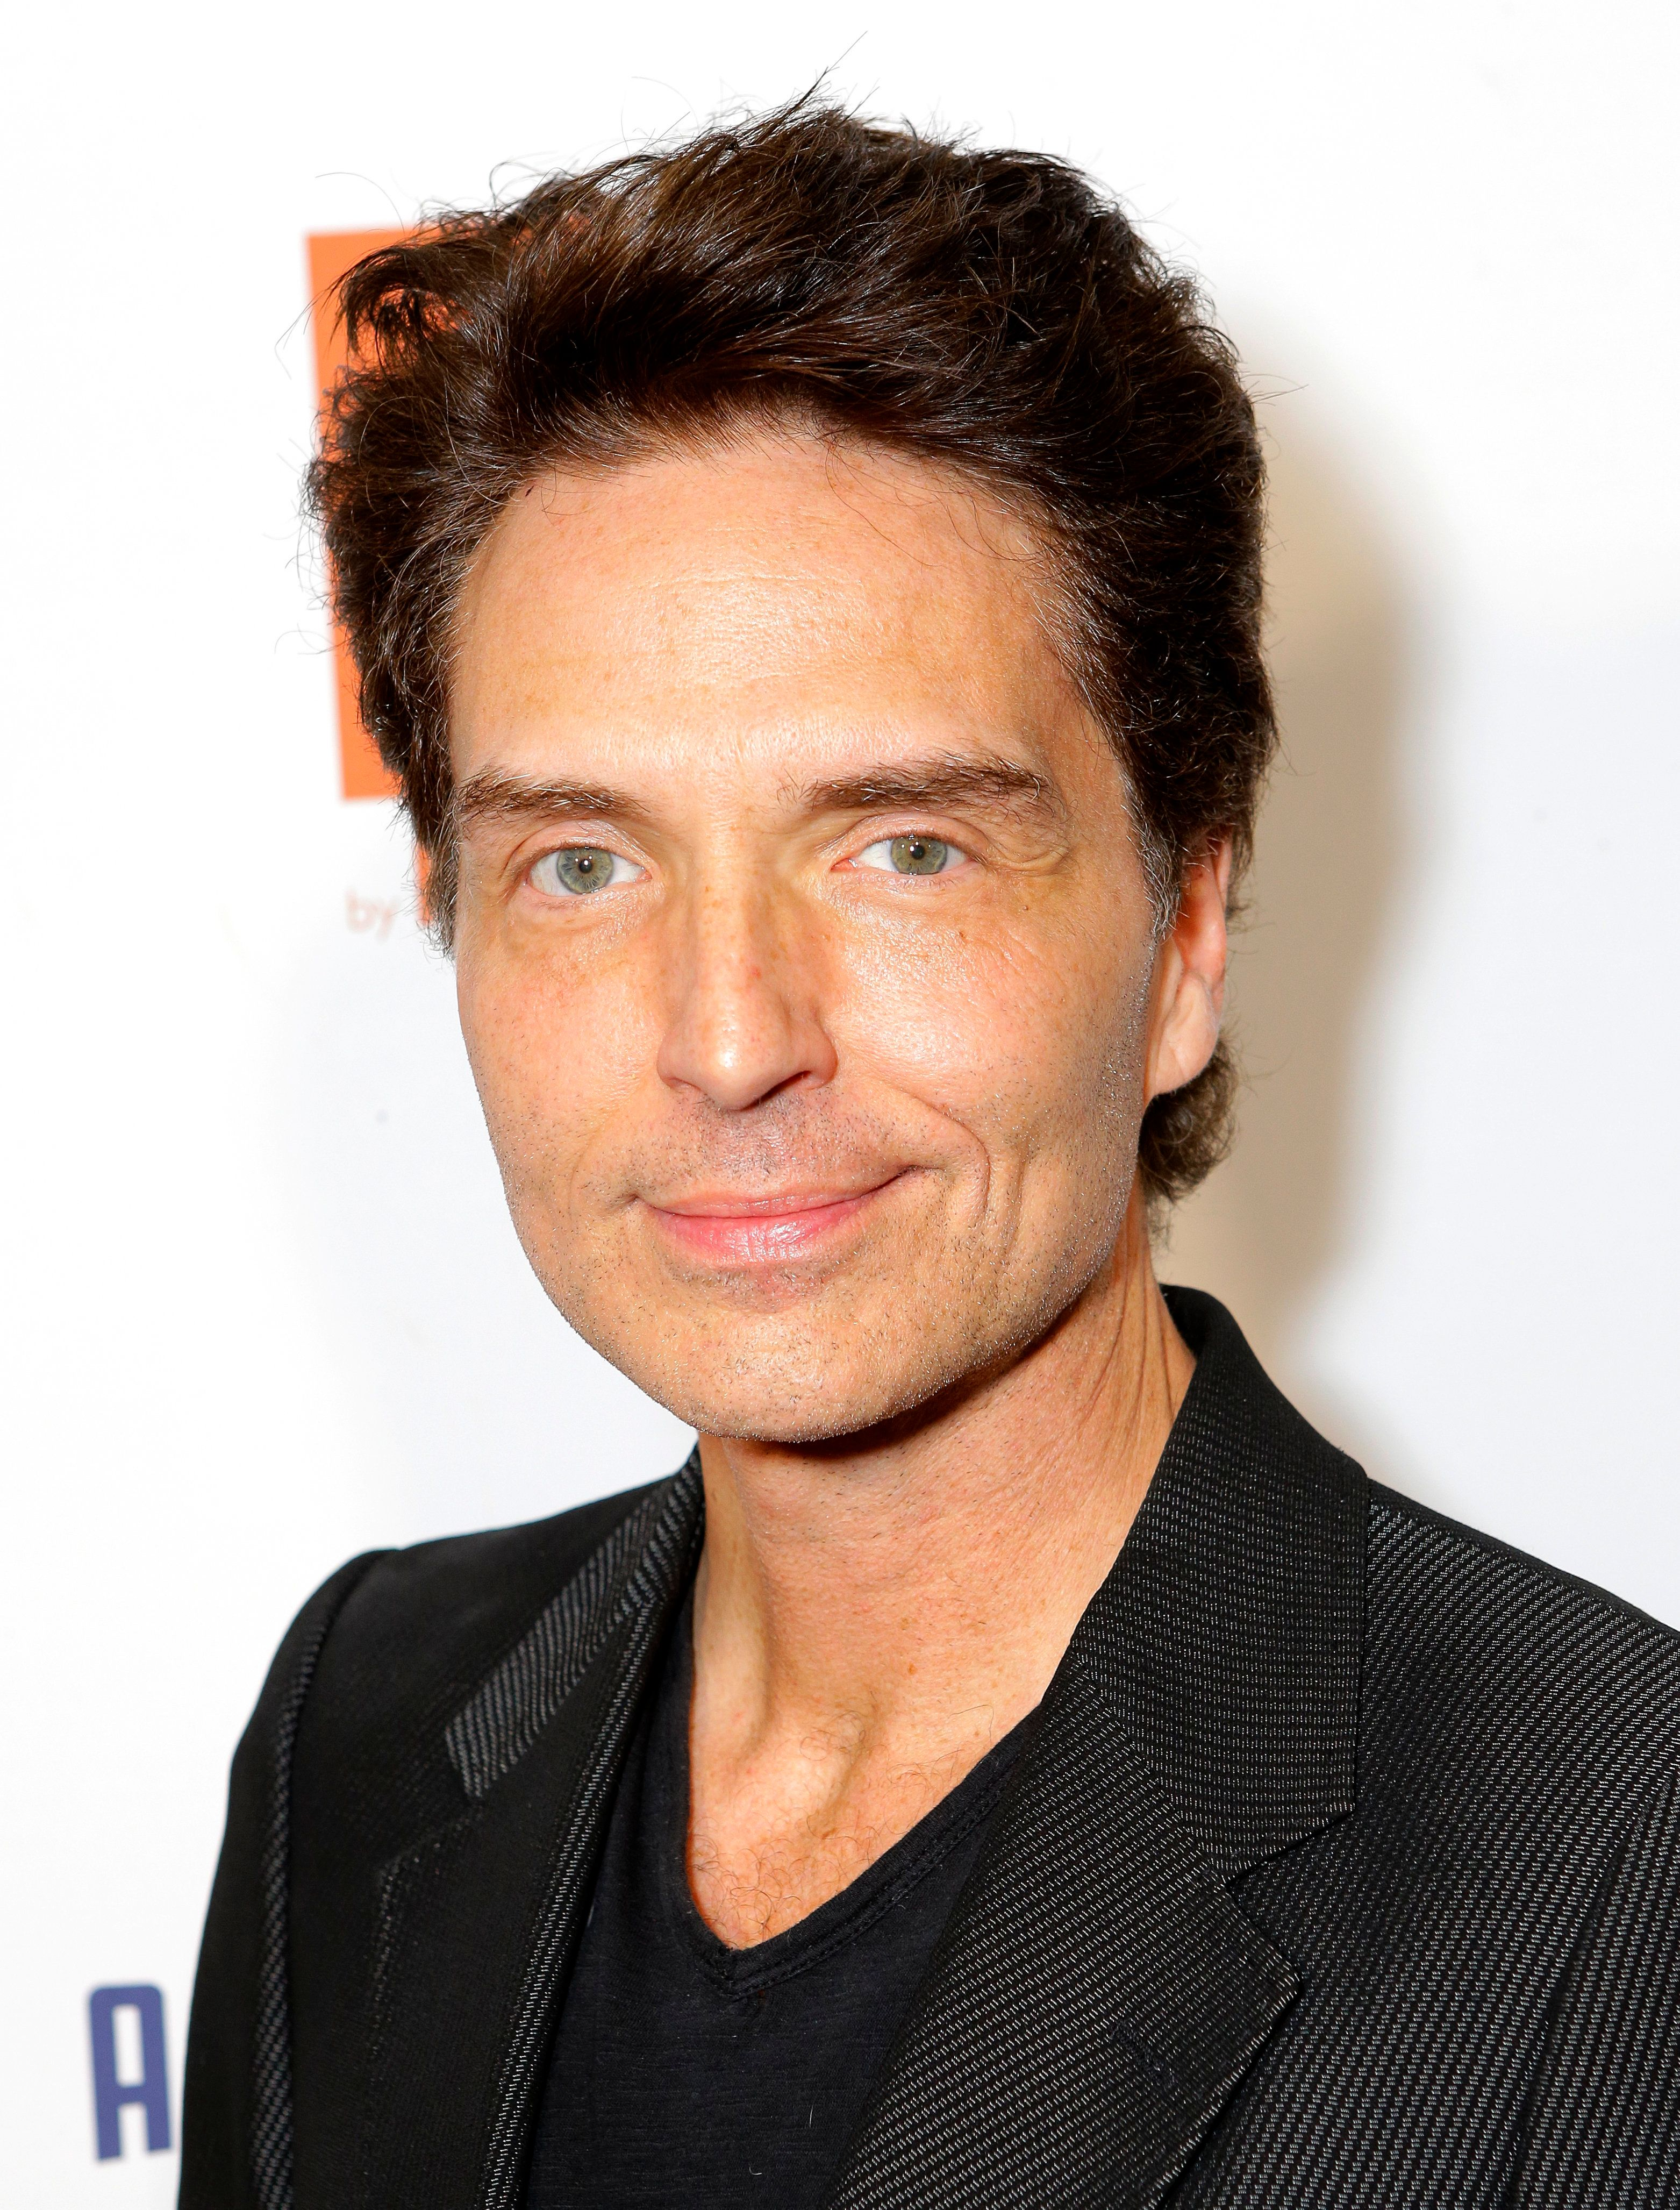 LOS ANGELES, CA - MAY 02:  Richard Marx attends the world premiere of  American Dream: Detroit at The Grove on May 2, 2018 in Los Angeles, California.  (Photo by Tiffany Rose/Getty Images for Caruso)